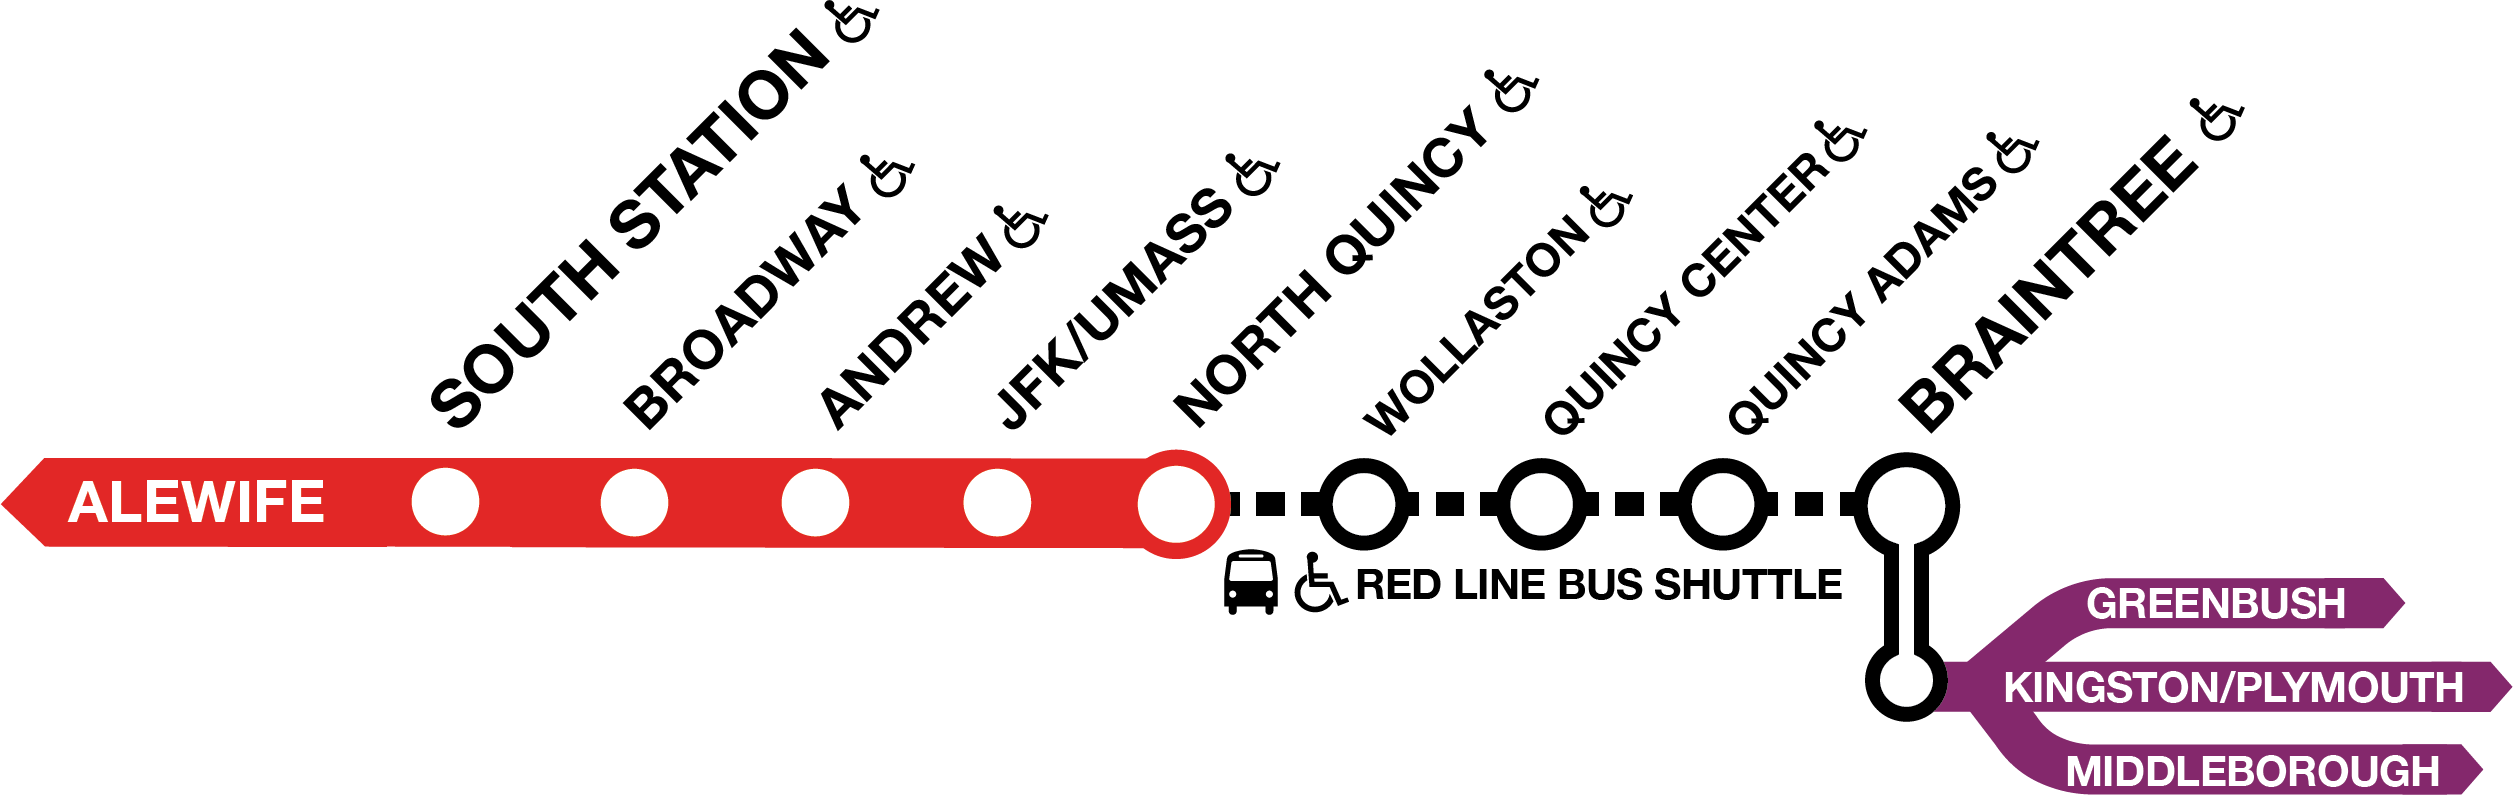 North Quincy to Braintree bus shuttle, with Commuter Rail Service terminating at Braintree